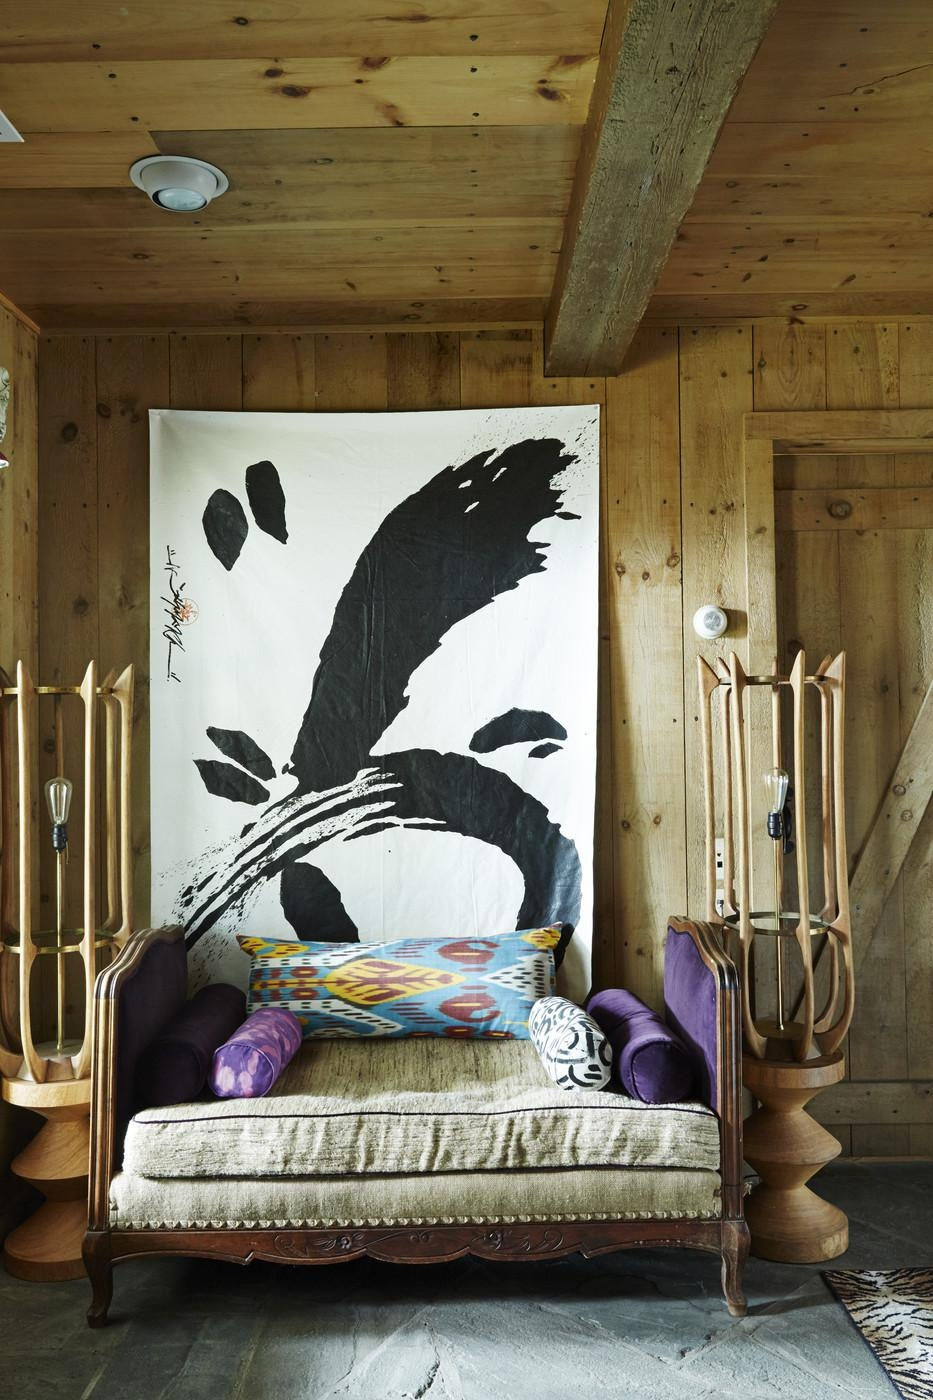 Make A Statement With Large Wall Art | Décor Aid In Oversized Wall Art (Image 12 of 20)